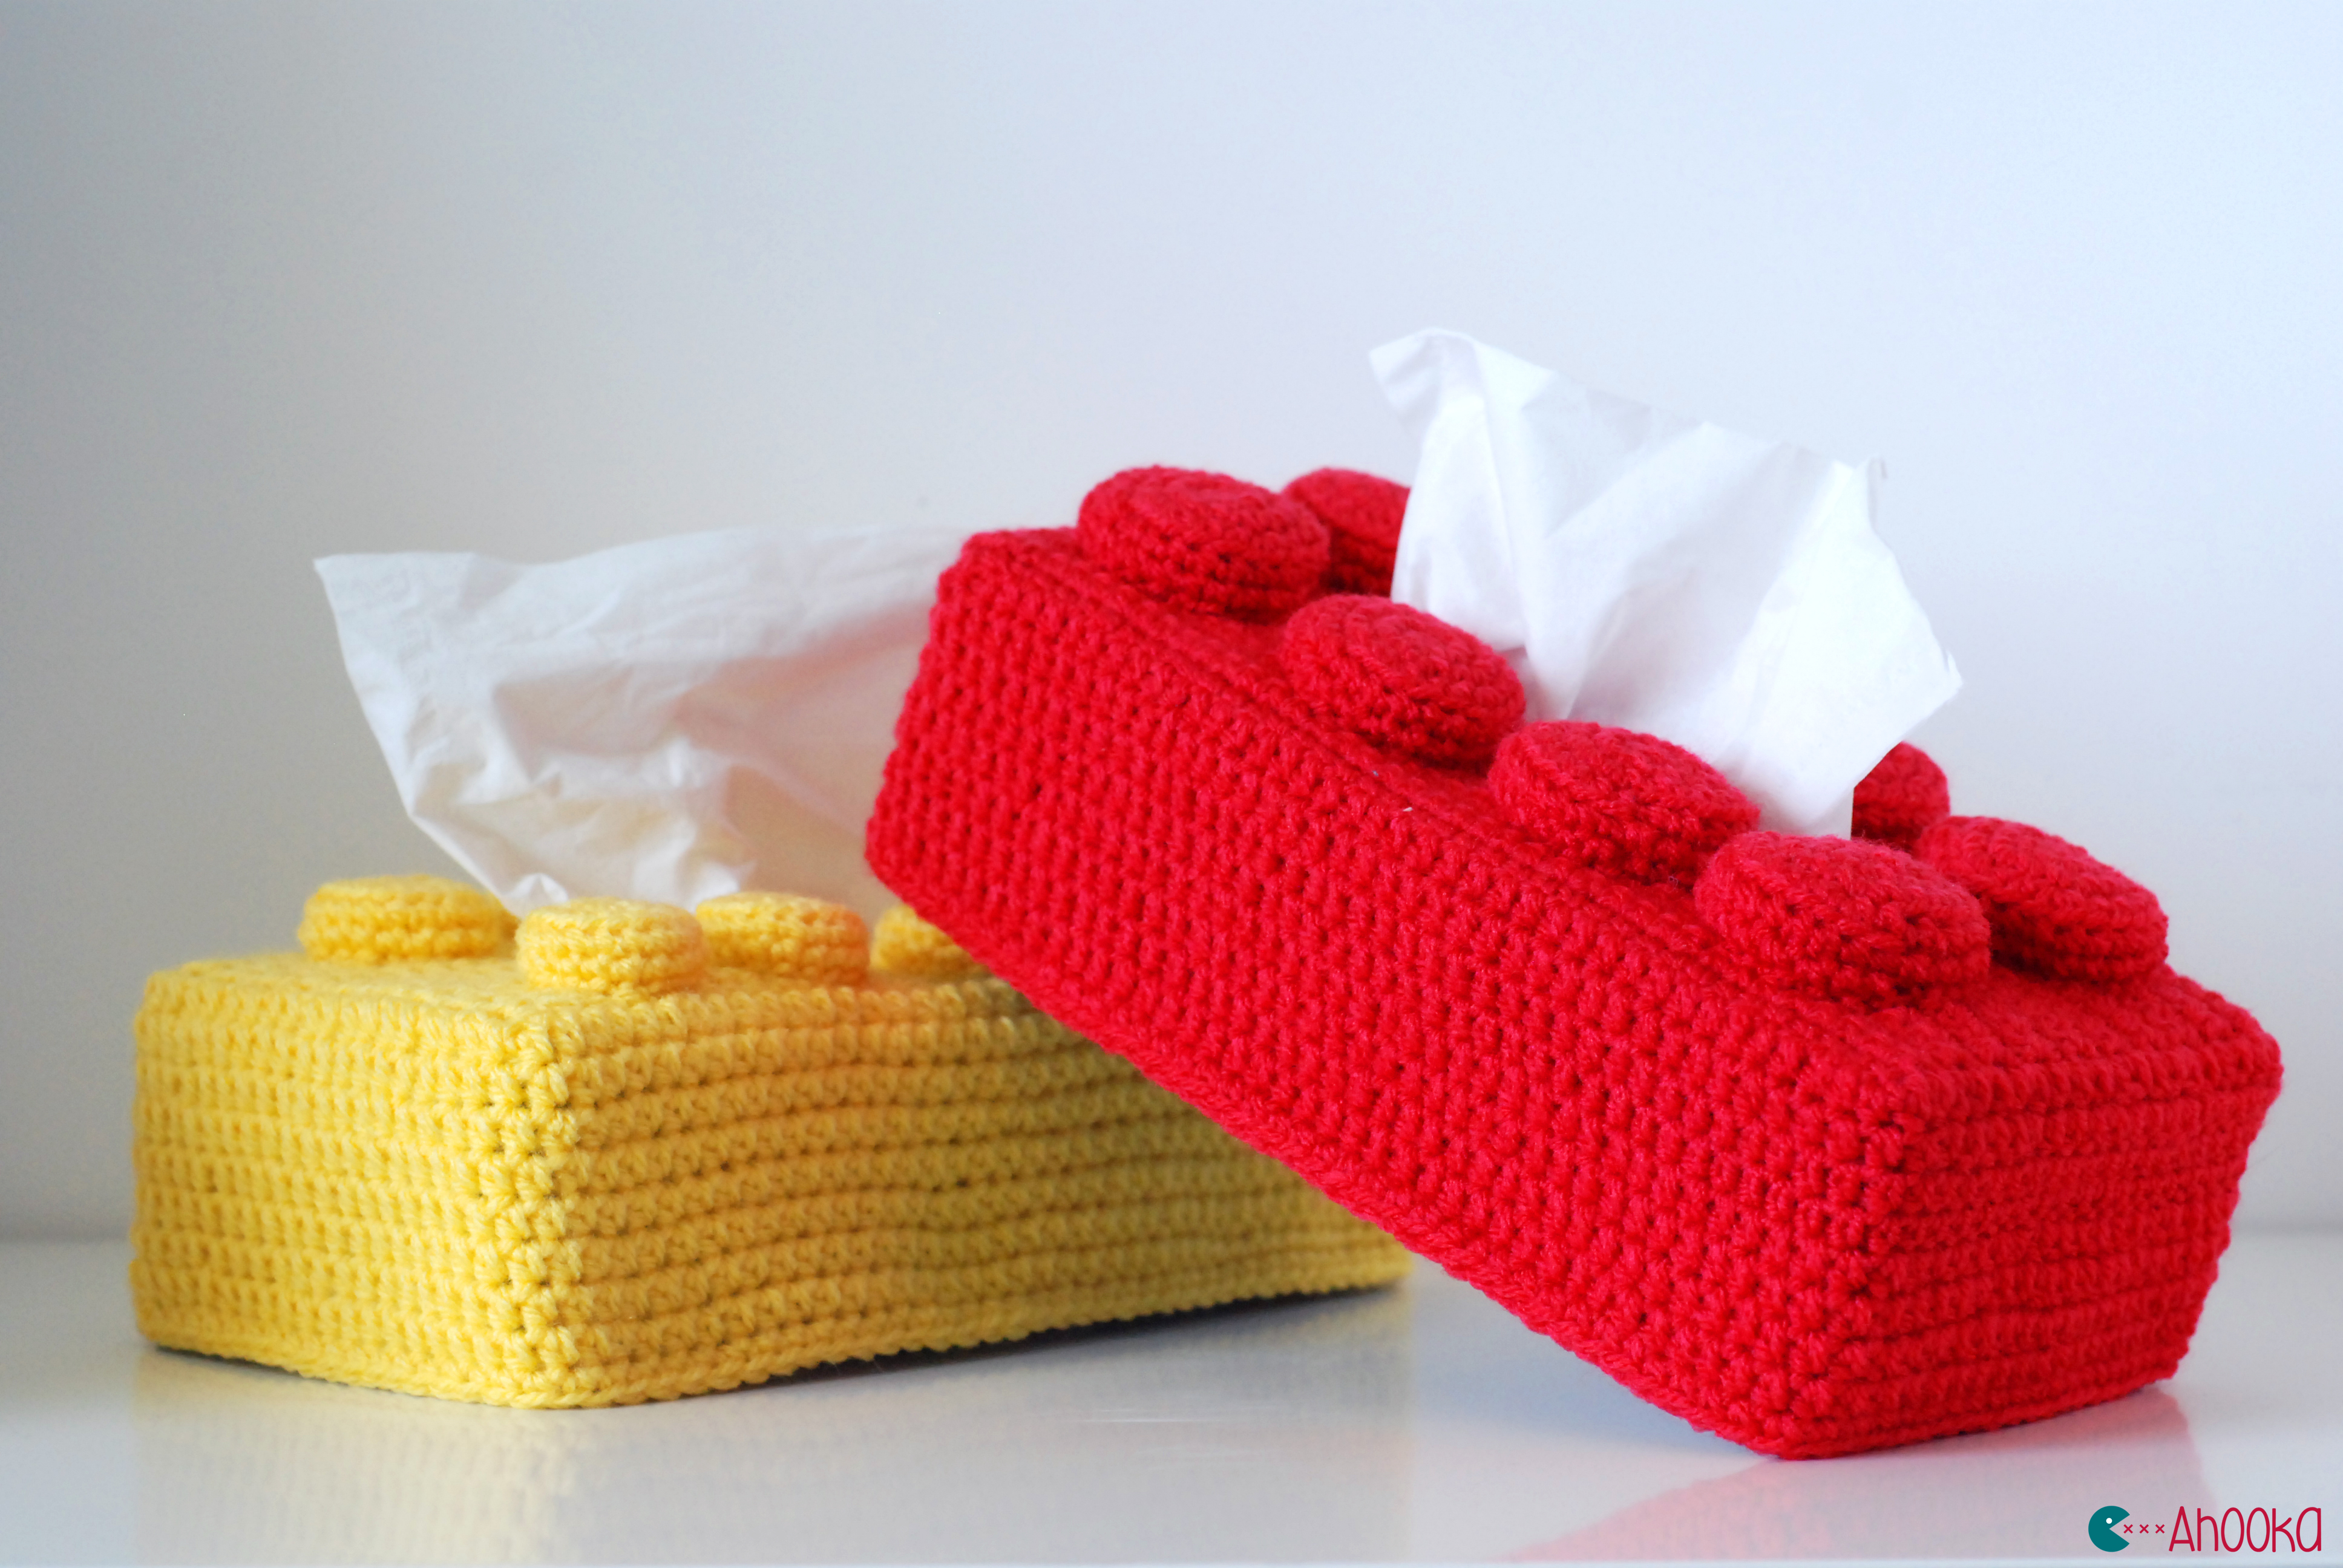 Crochet Lego Bricks Tissue Box Covers [tutorial] by Ahookamigurumi